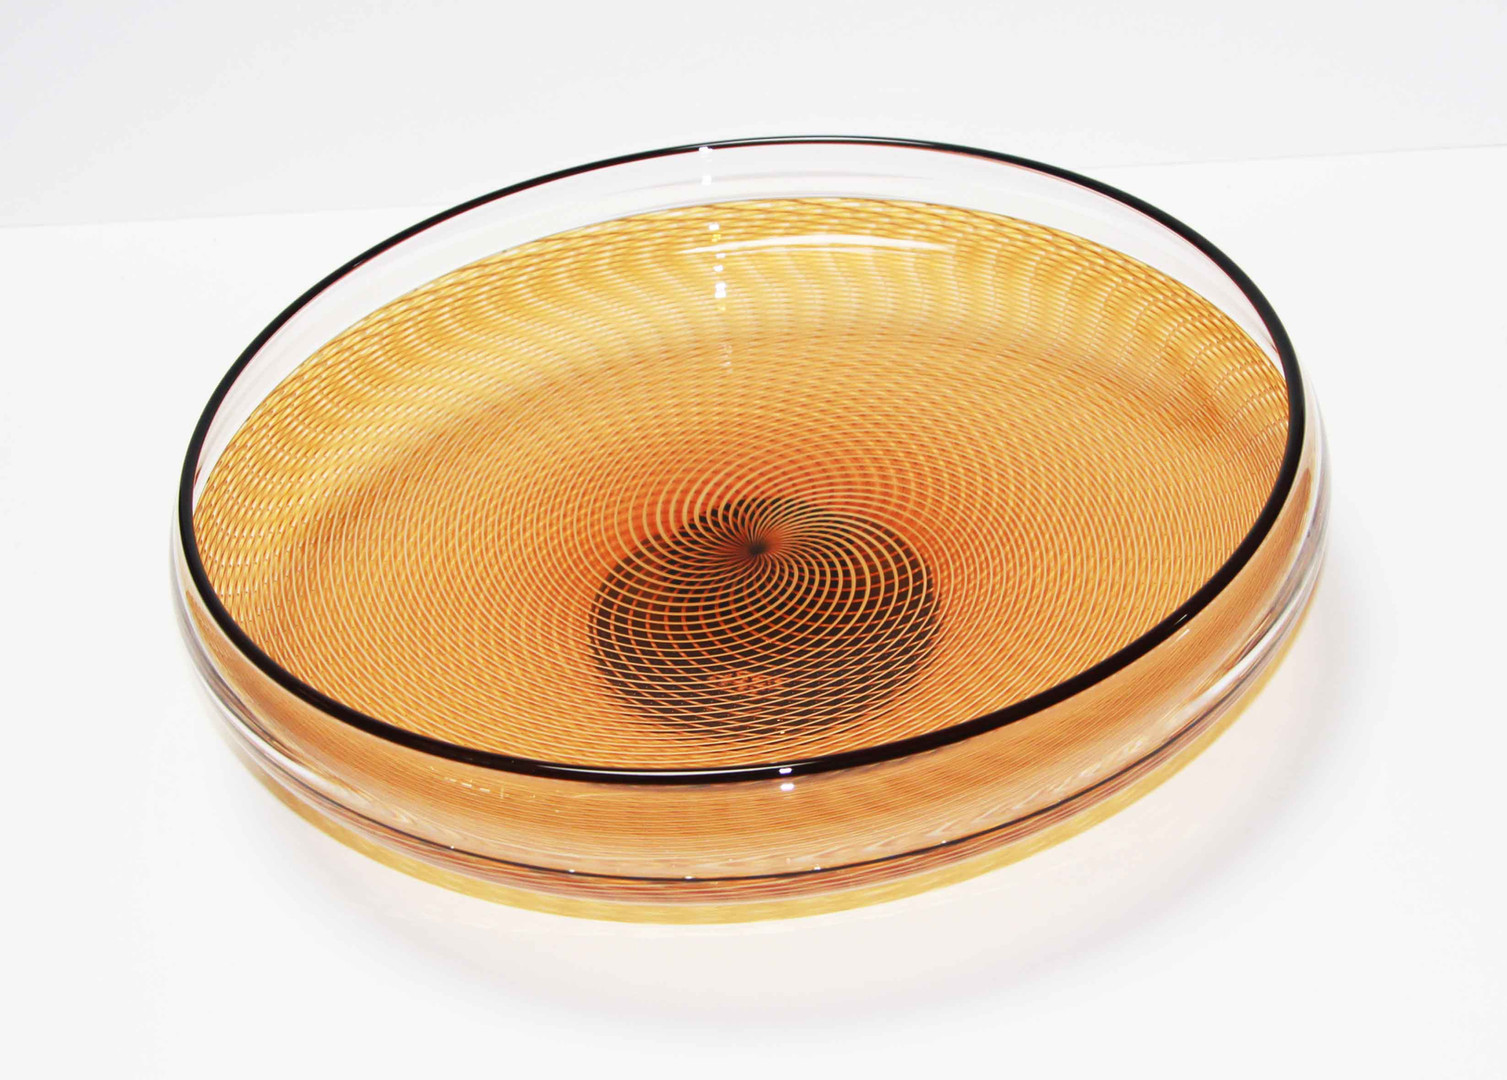 Pieper Gold Reticello Bowl